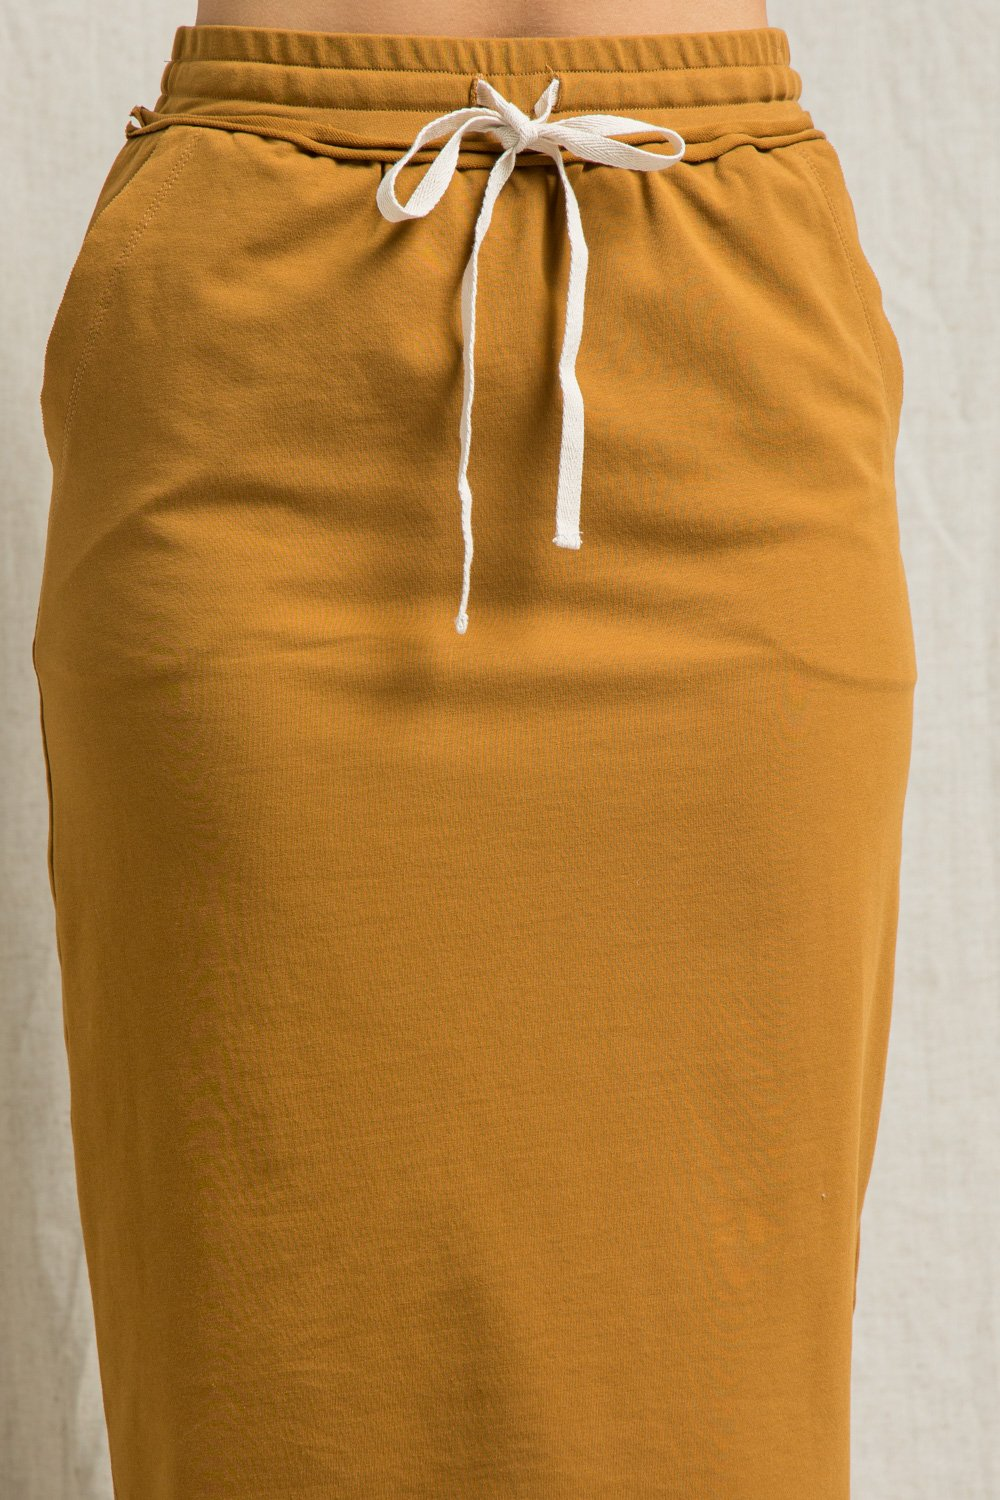 COTTON SKIRT WITH SELFT TIE DRAWSTRING